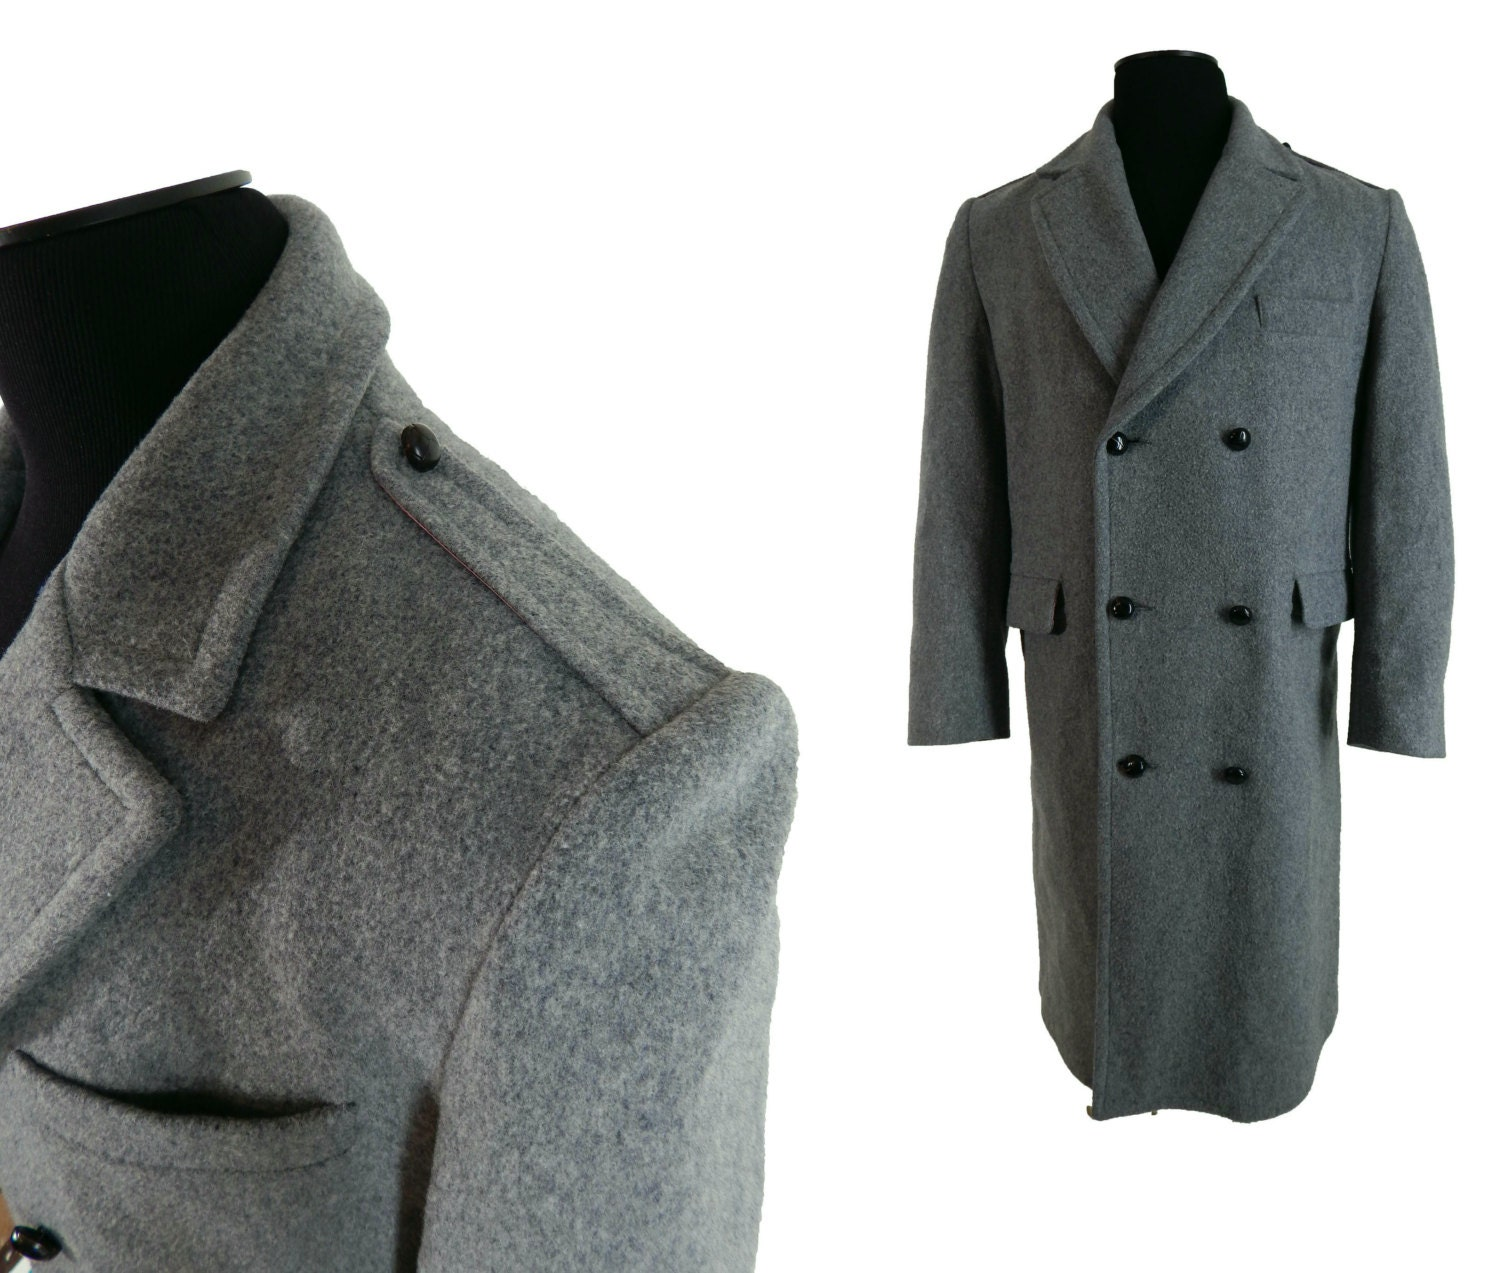 Vintage 70's Mens Fashion Double Breasted Wool Coat Maine Guide by Congress Size 40 o2HUcu